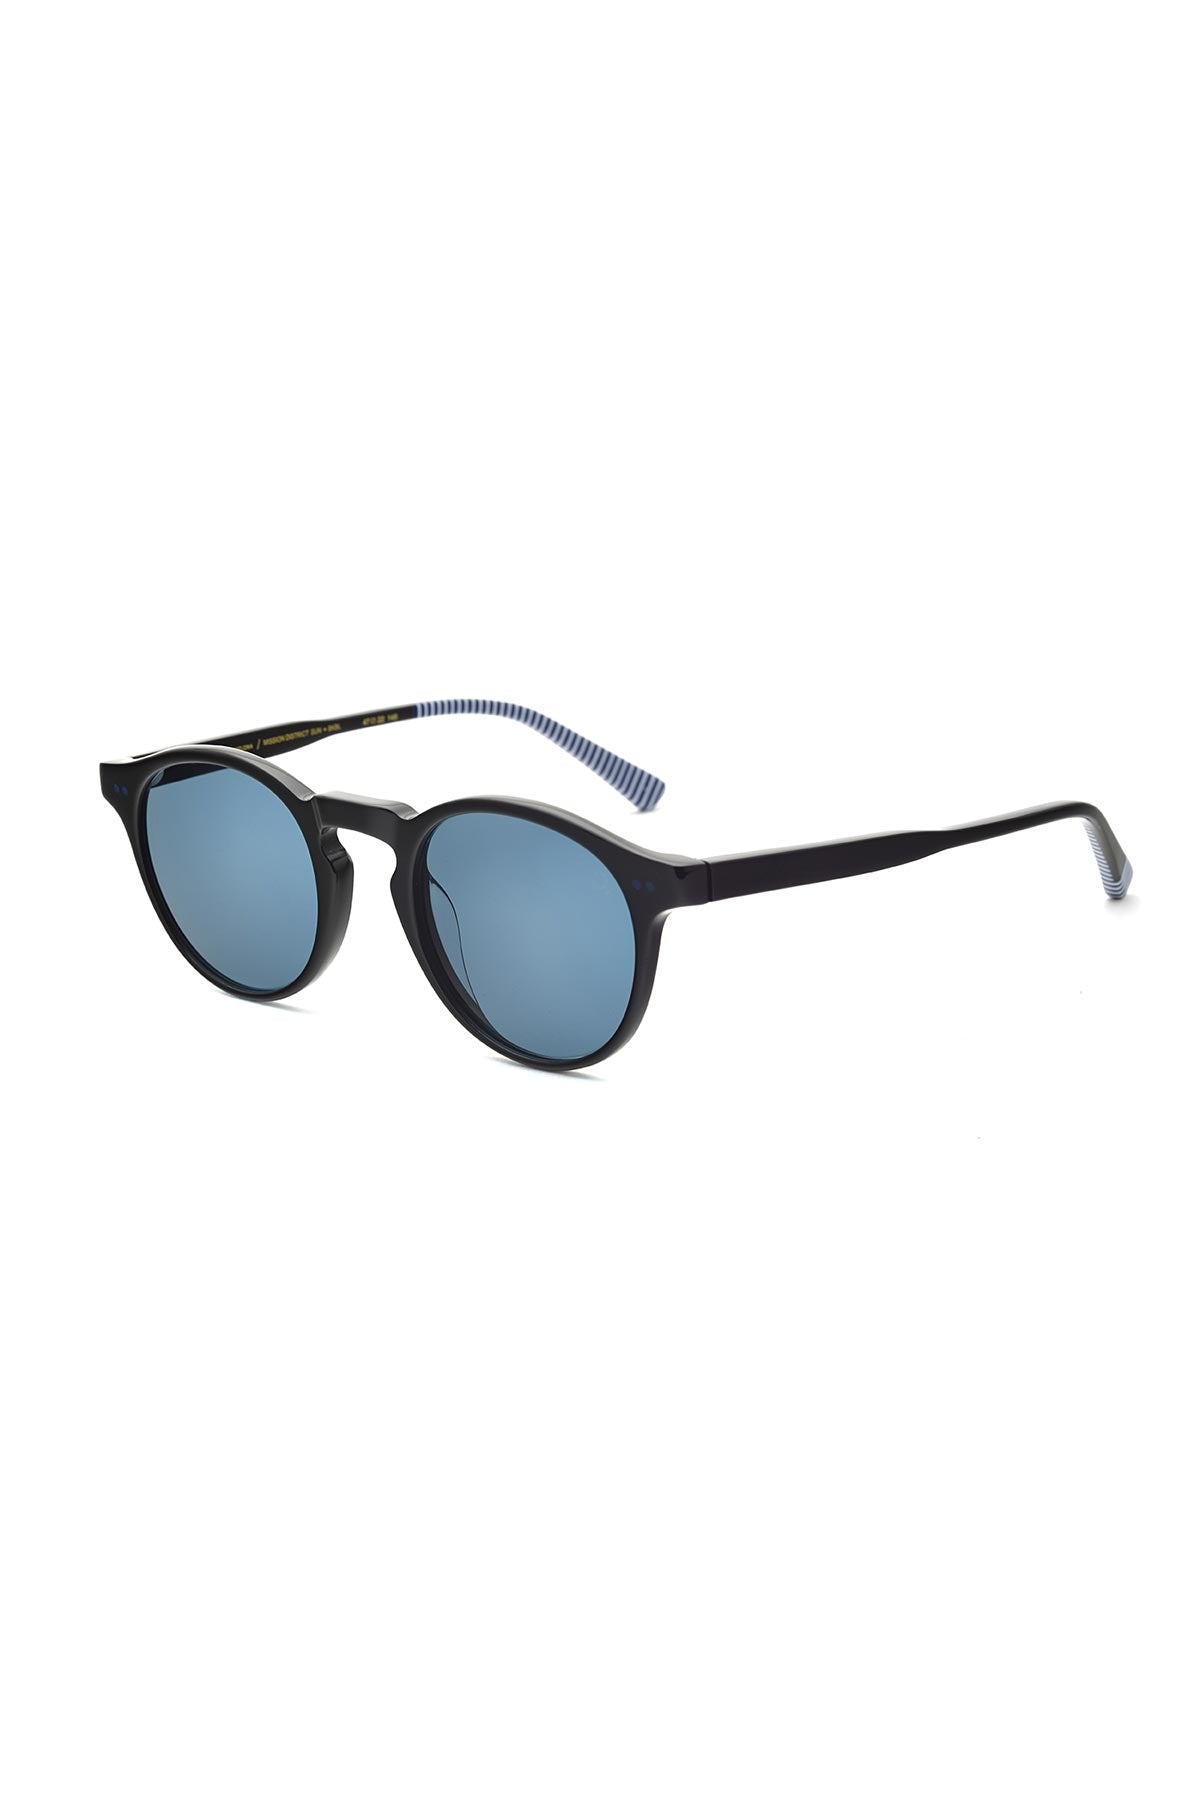 MISSION DISTRICT SUNGLASSES by ETNIA